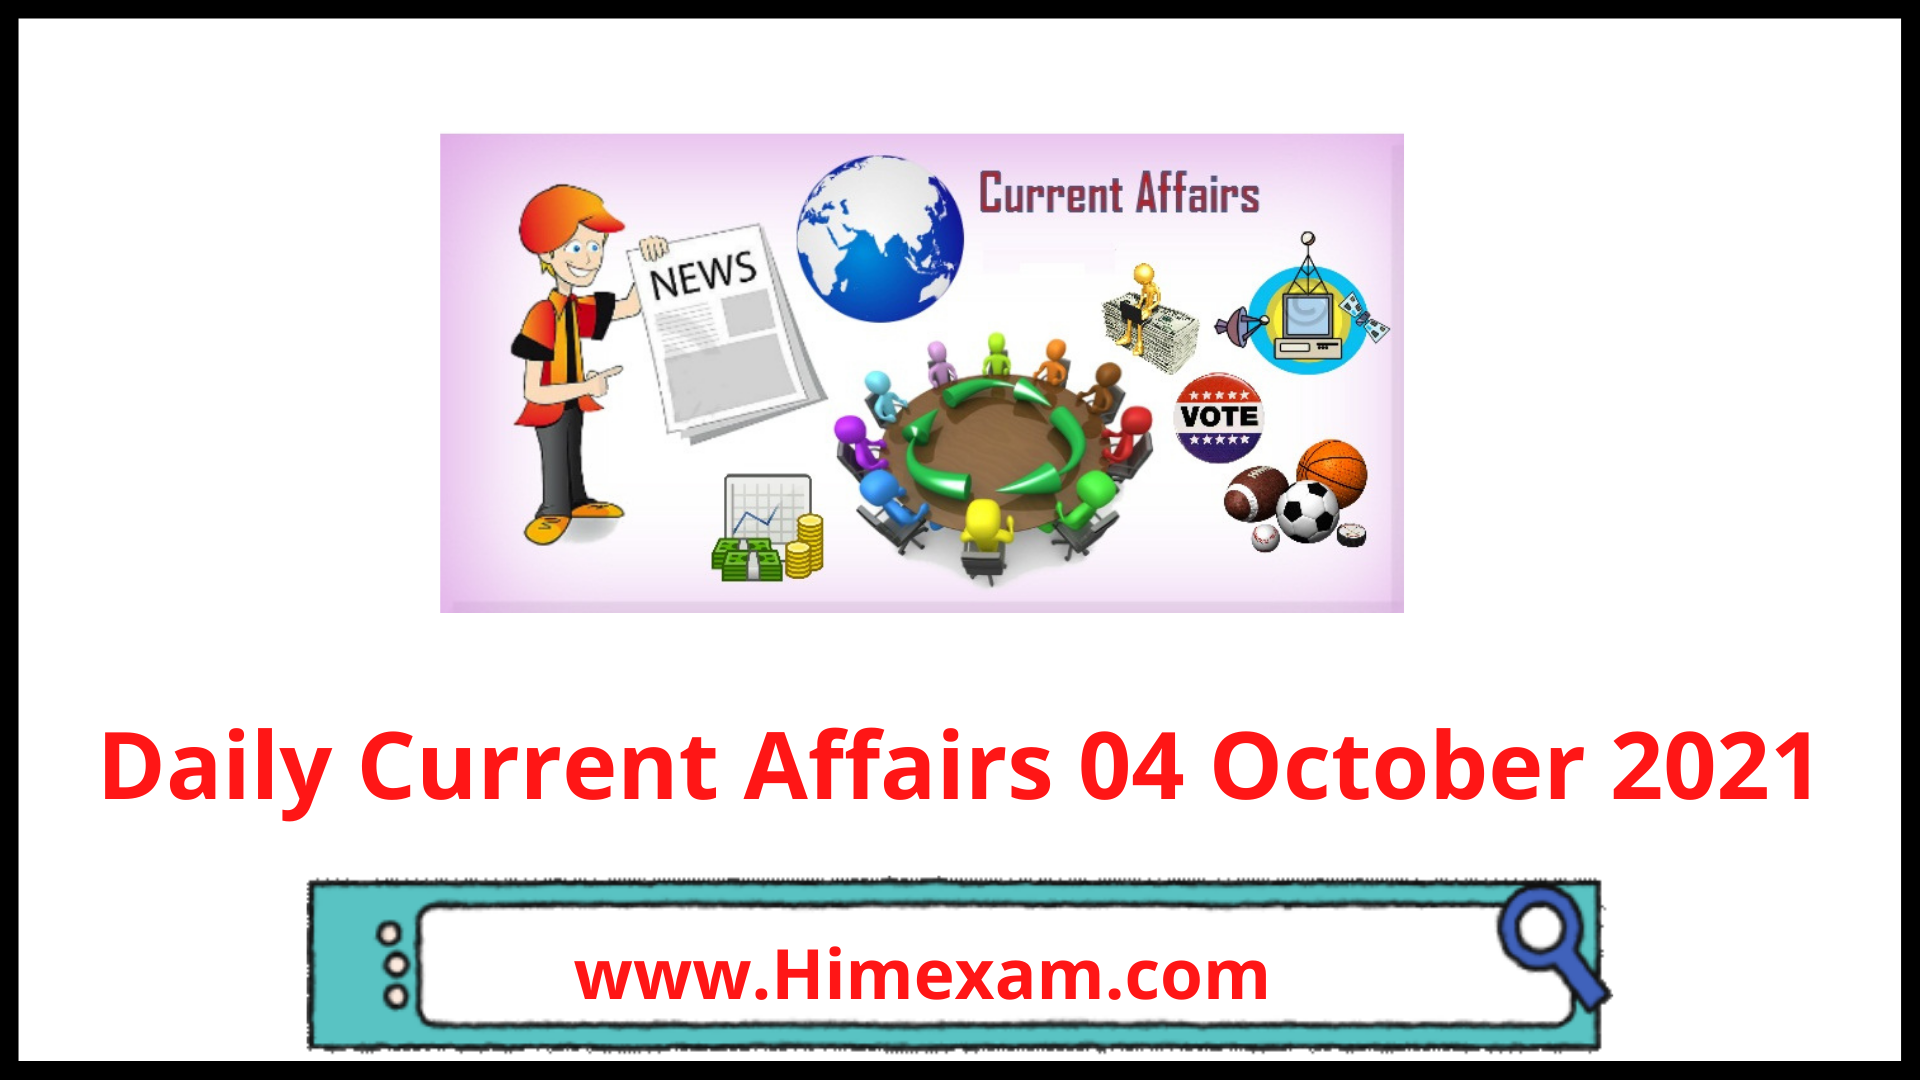 Daily Current Affairs 04 October 2021